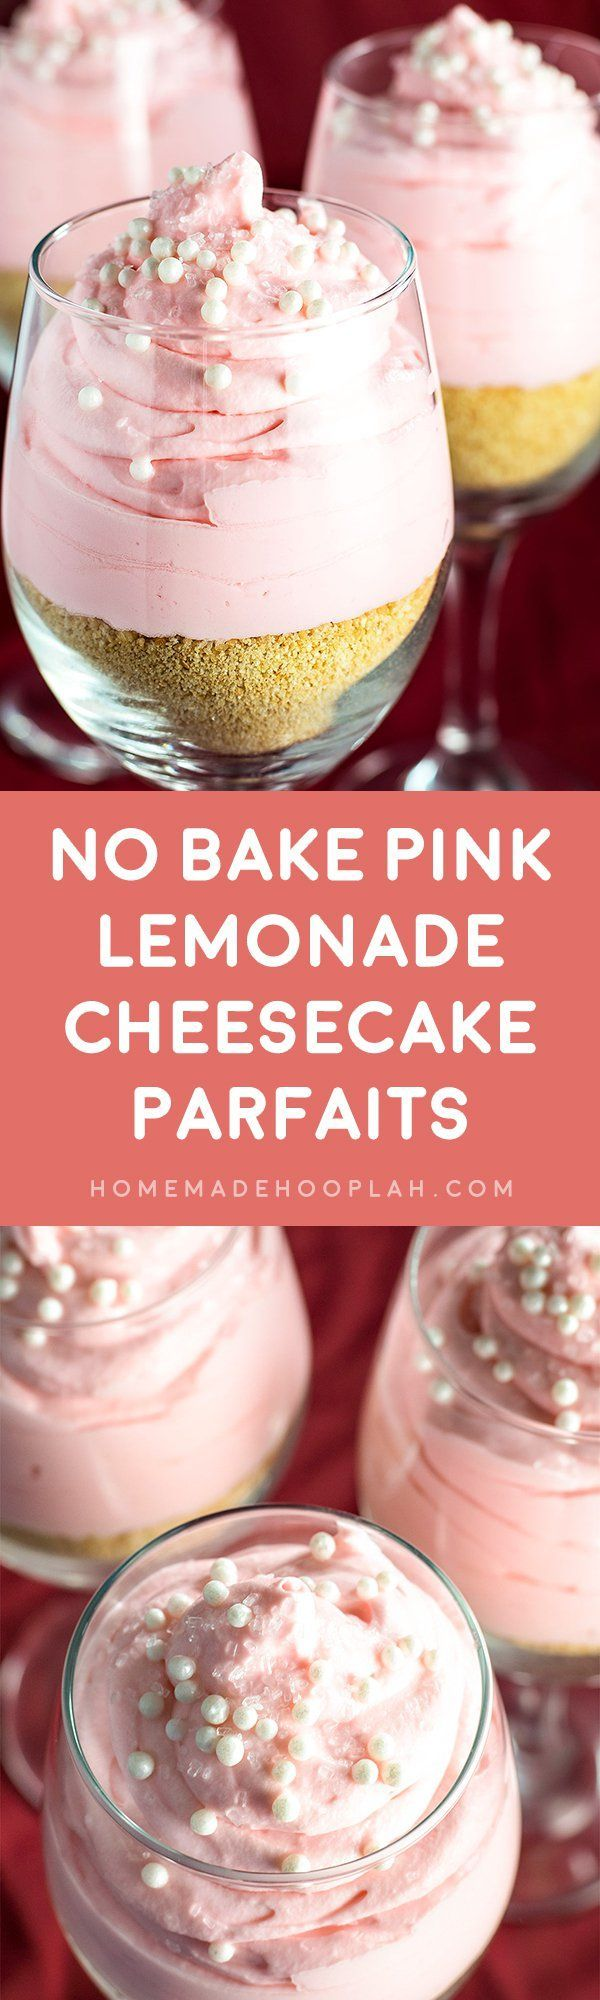 No Bake Pink Lemonade Cheesecake Parfaits! Single serve cheesecake parfaits with a hint of pink lemonade flavor - perfect for your Valentine!